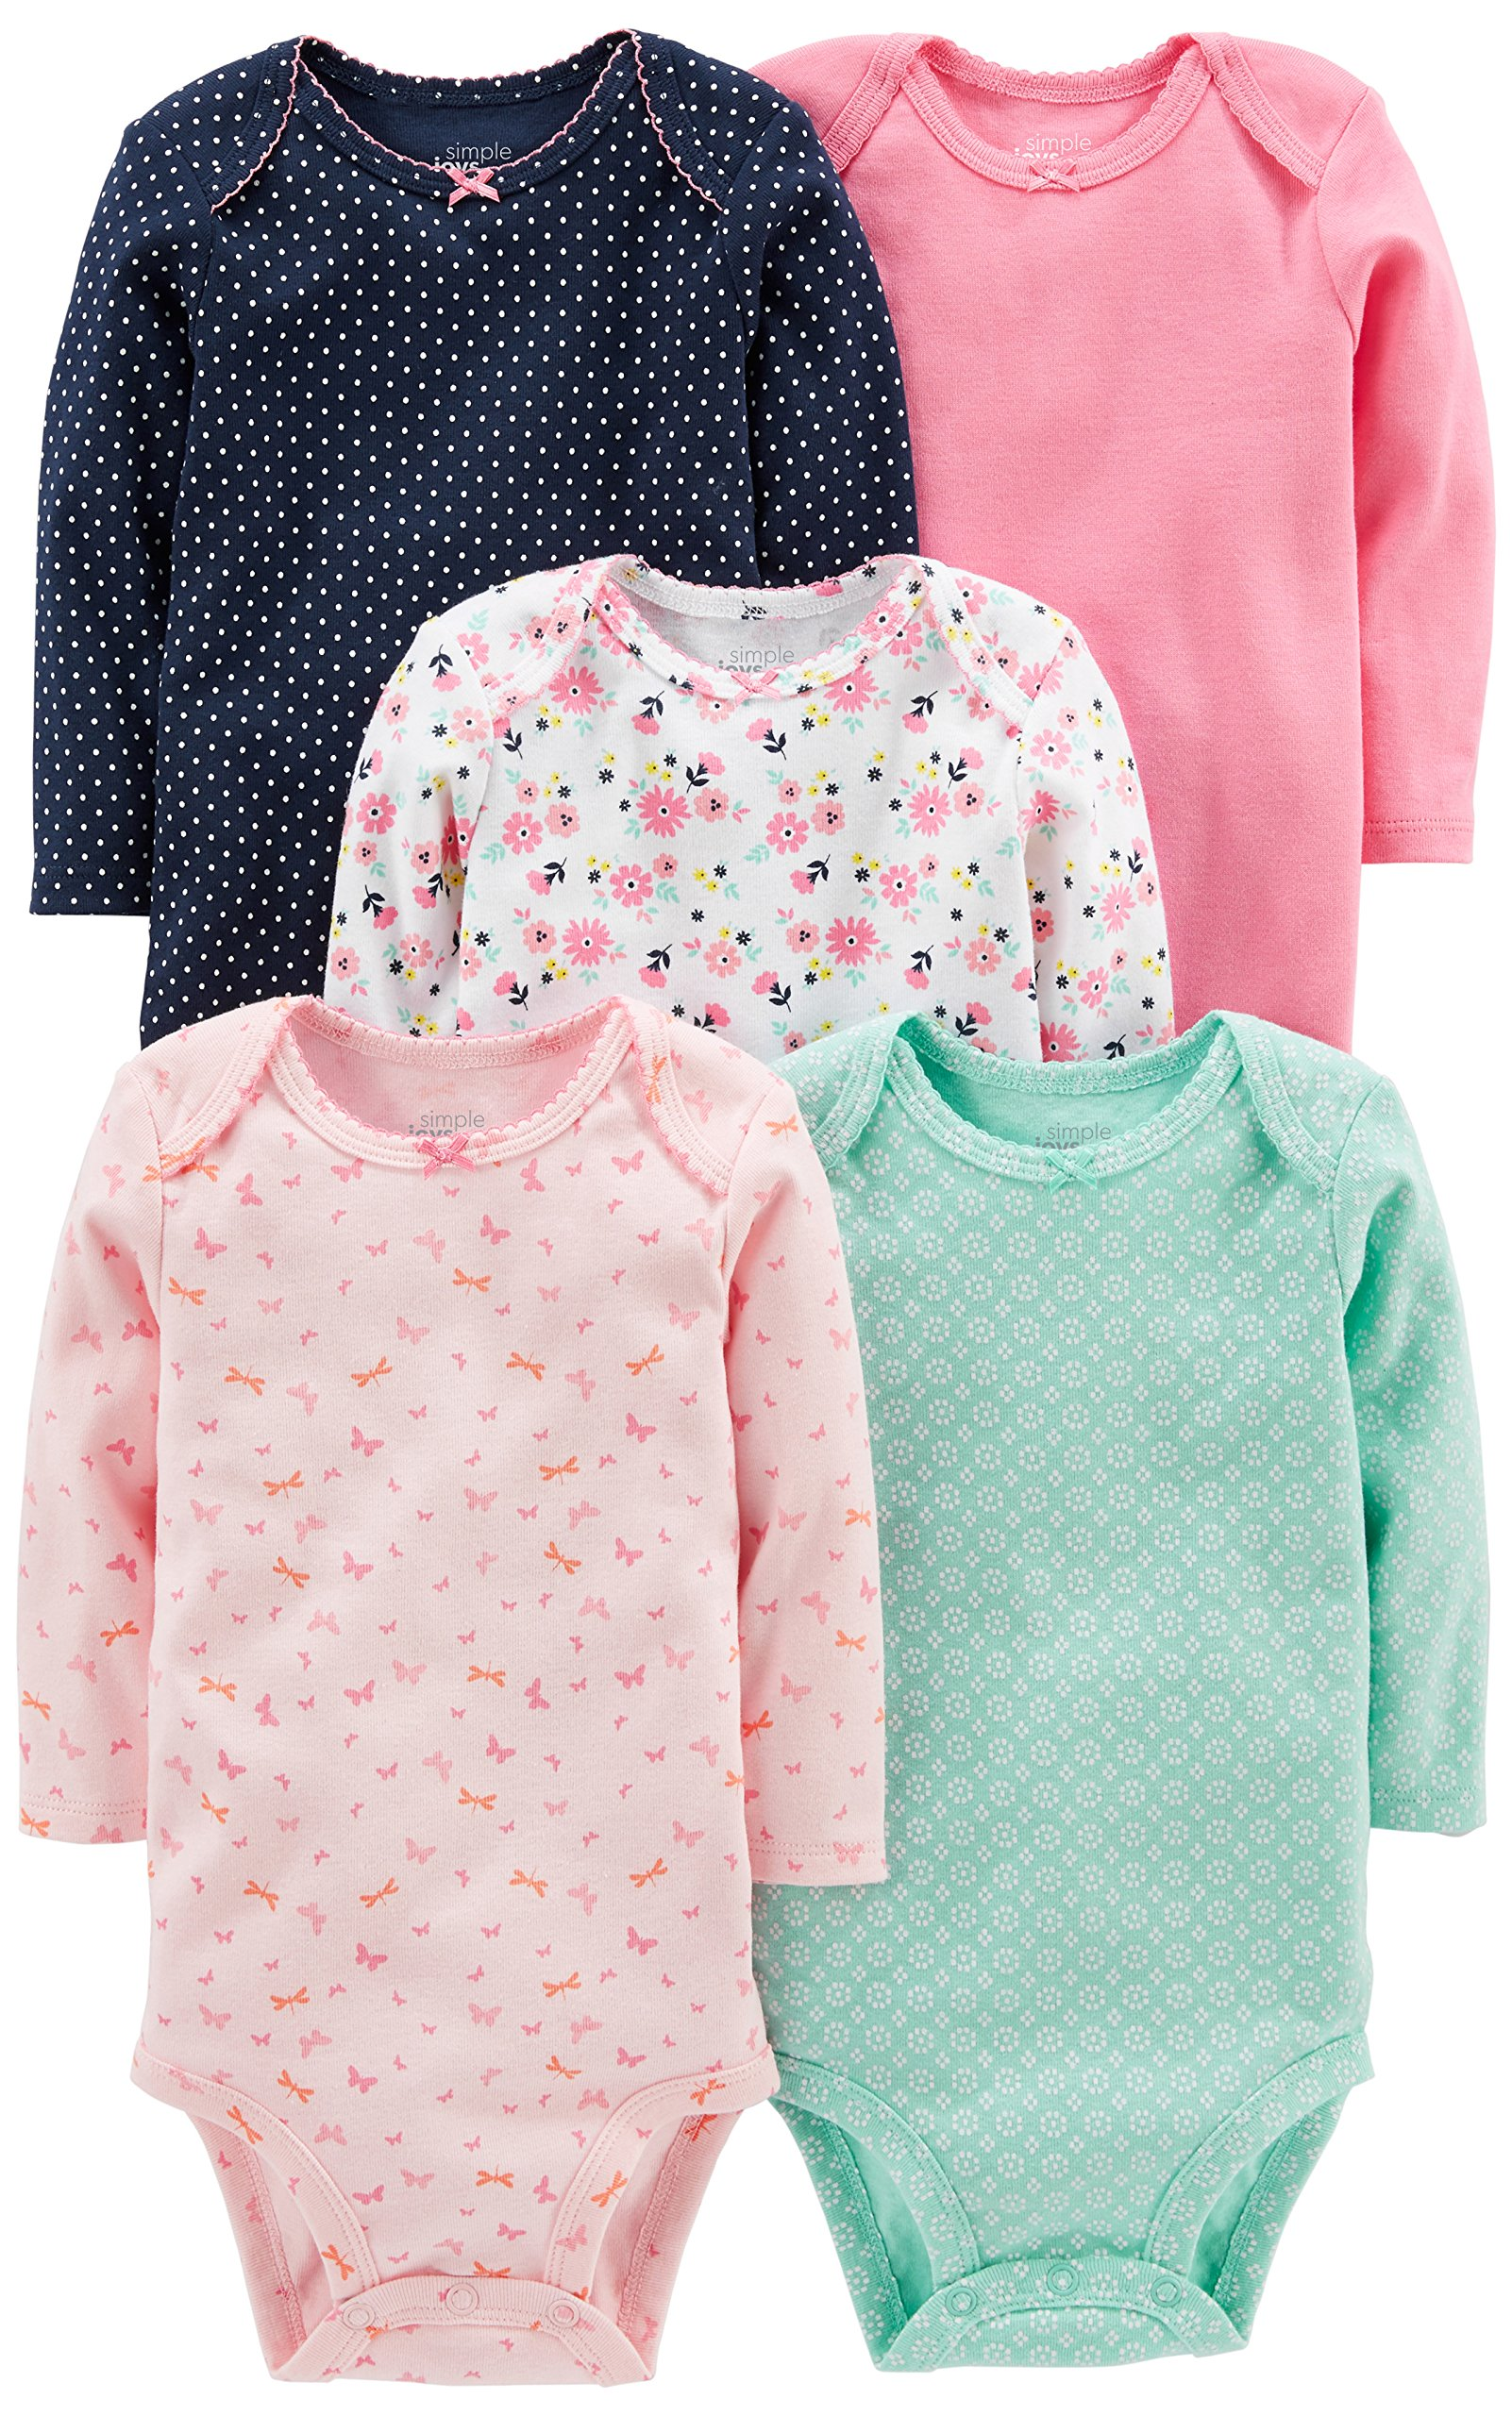 Simple Joys by Carter's Baby Girls' 5-Pack Long-Sleeve Bodysuit, Pink/Navy/Mint, 18 Months